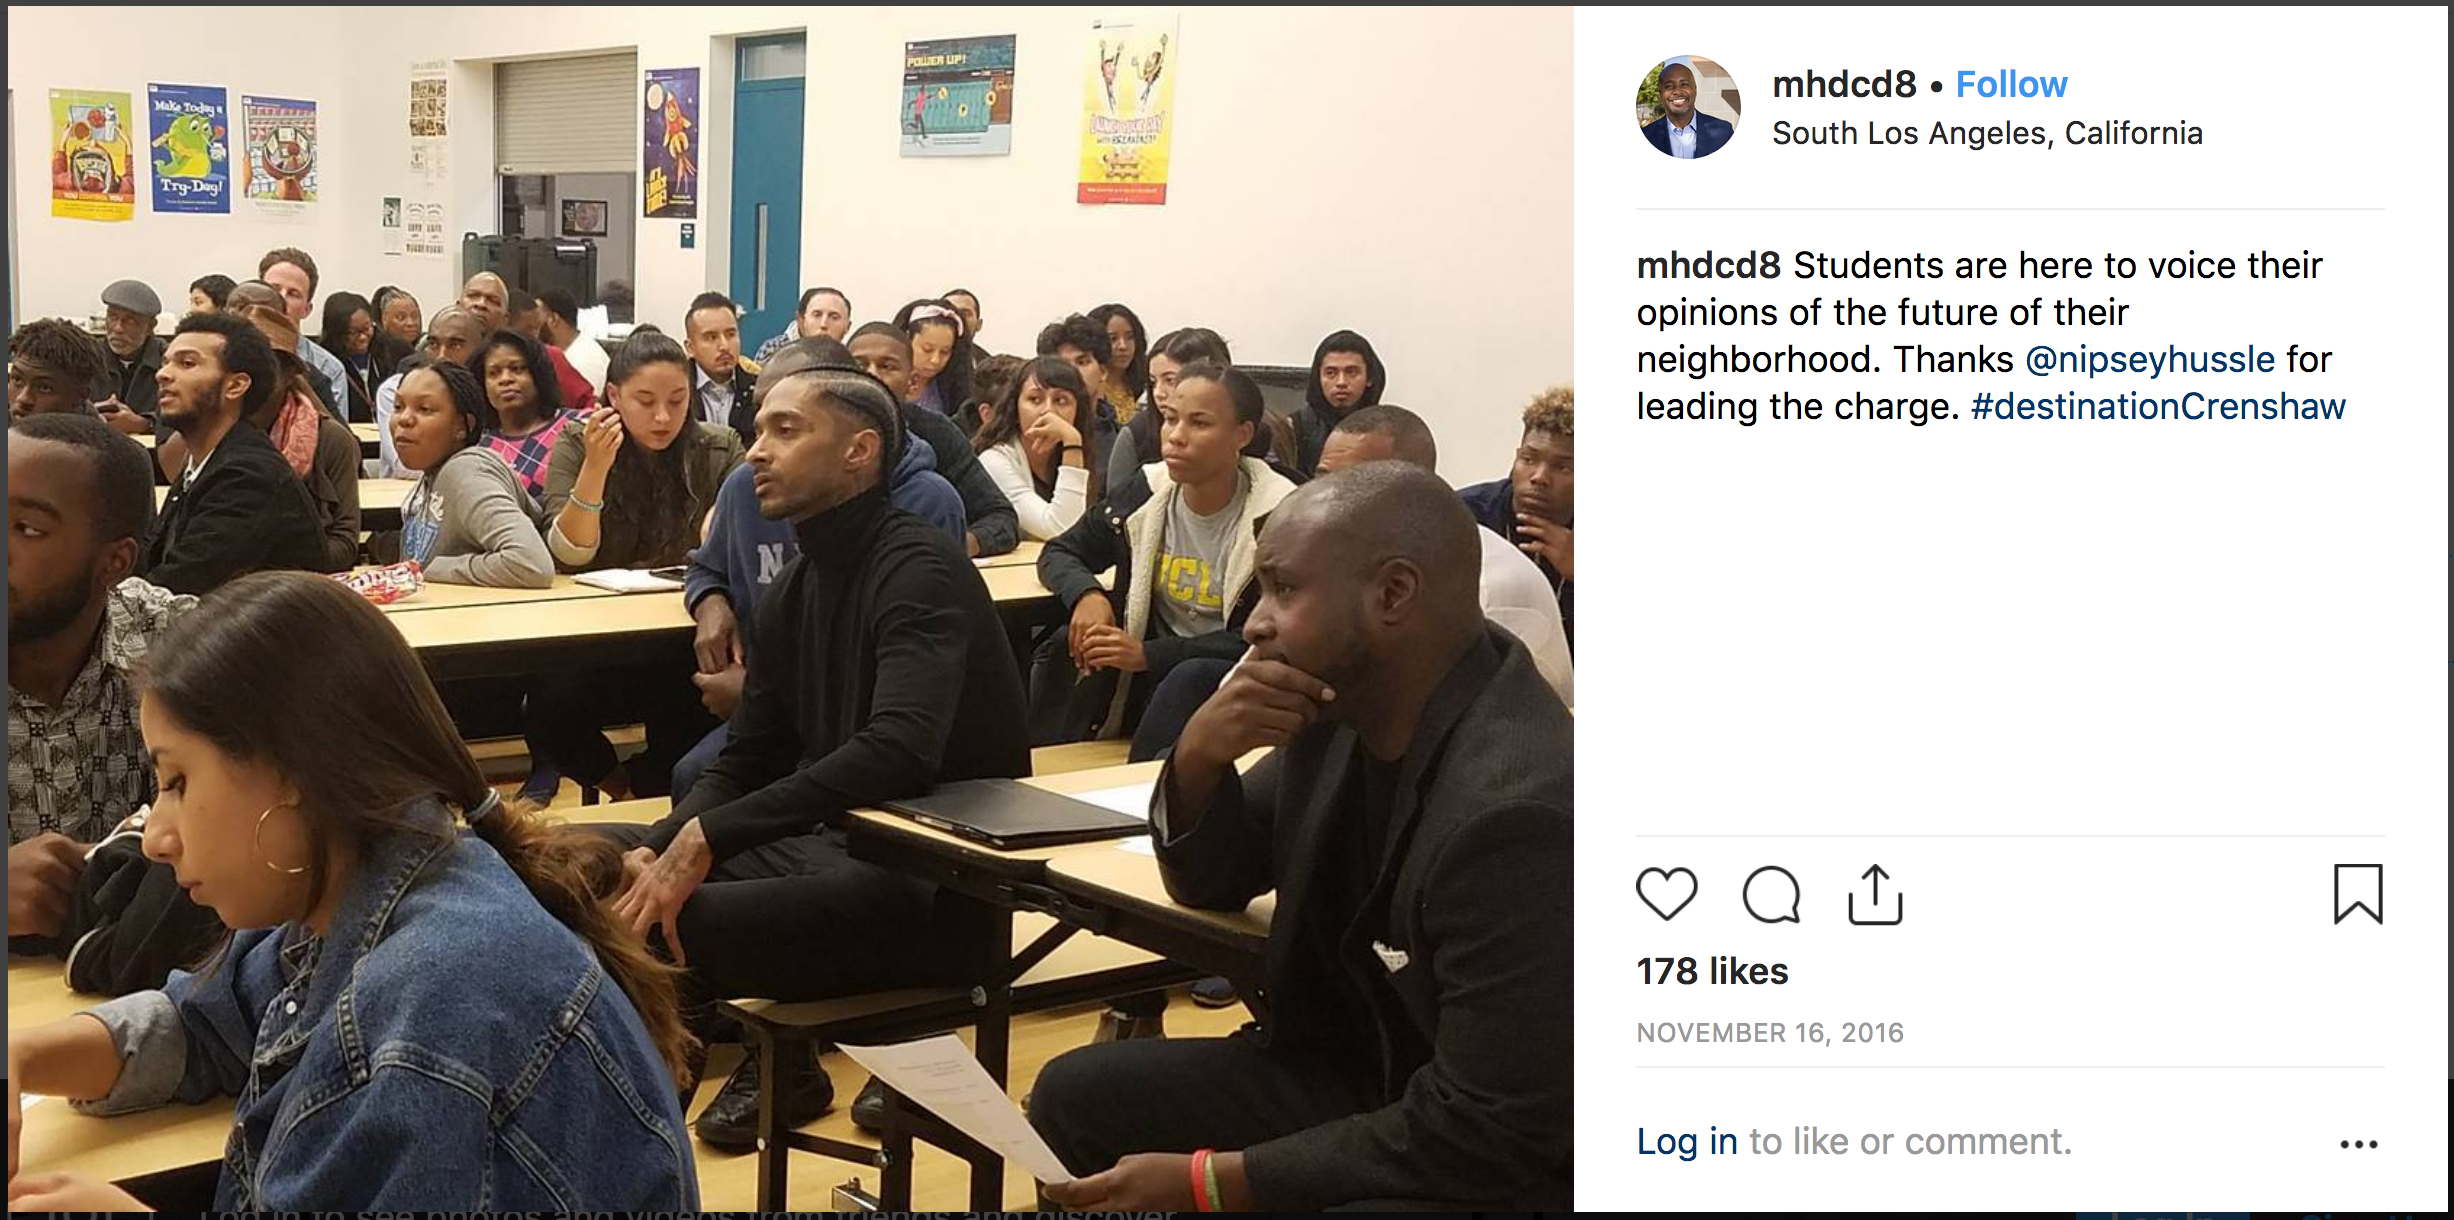 Nipsey Hussle (at center) and Councilmember Marqueece Harris-Dawson (at right) meet with students to talk Destination Crenshaw and the future of the community. [Click image to visit the original Instagram post]